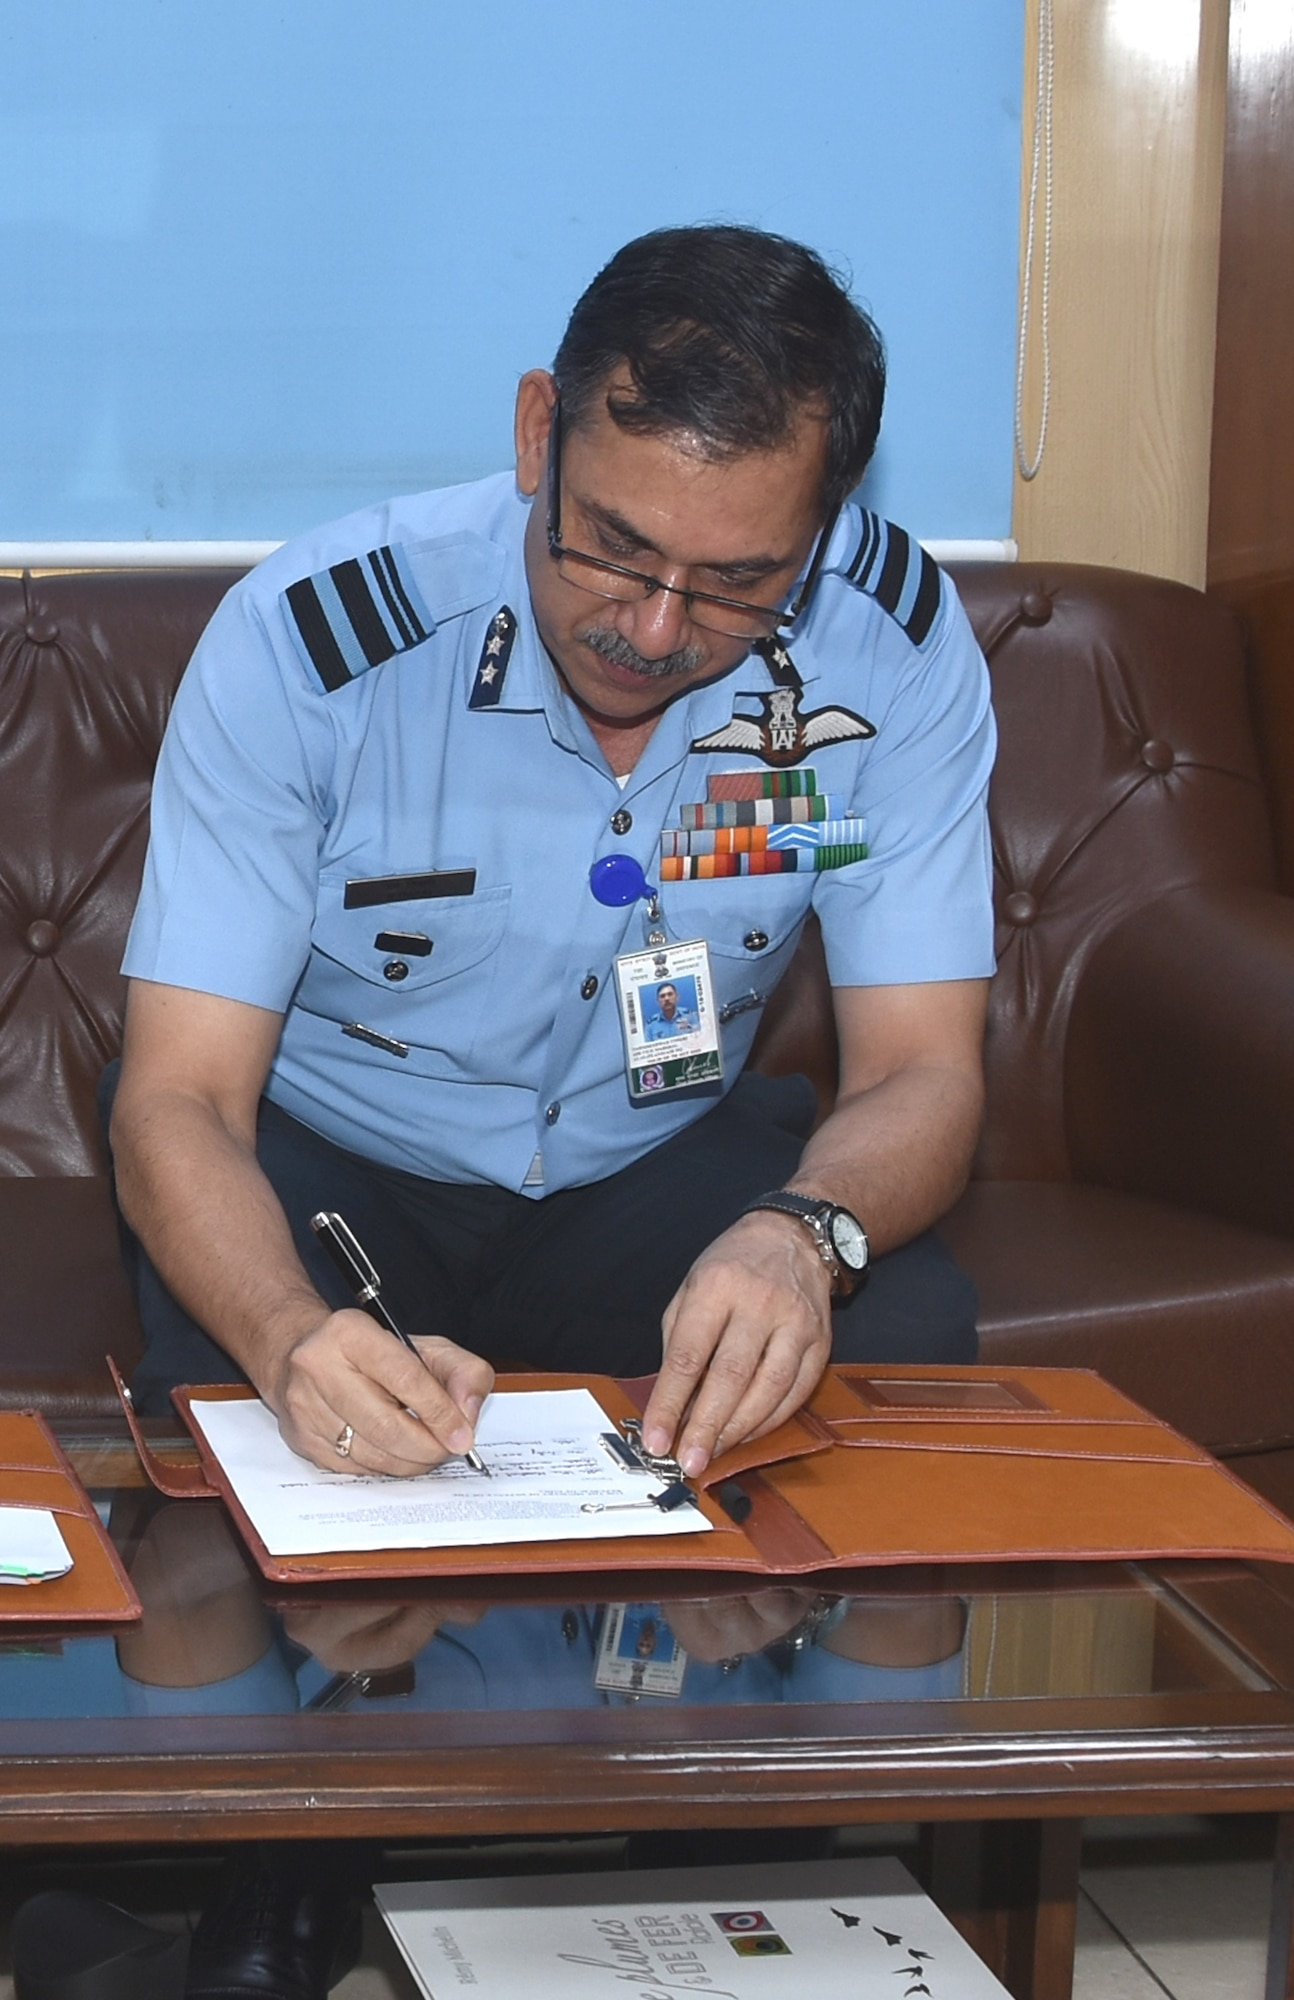 Indian Air Force Air Vice Marshal Narmdeshwar Tiwari, Assistant Chief of Air Staff for Plans, counter-signs a landmark agreement to co-develop air-launched Unmanned Aerial Vehicles under the U.S.-India Defense Technology and Trade Initiative, at Indian Air Force Headquarters in New Delhi, India, on July 30, 2021. (Courtesy photo)